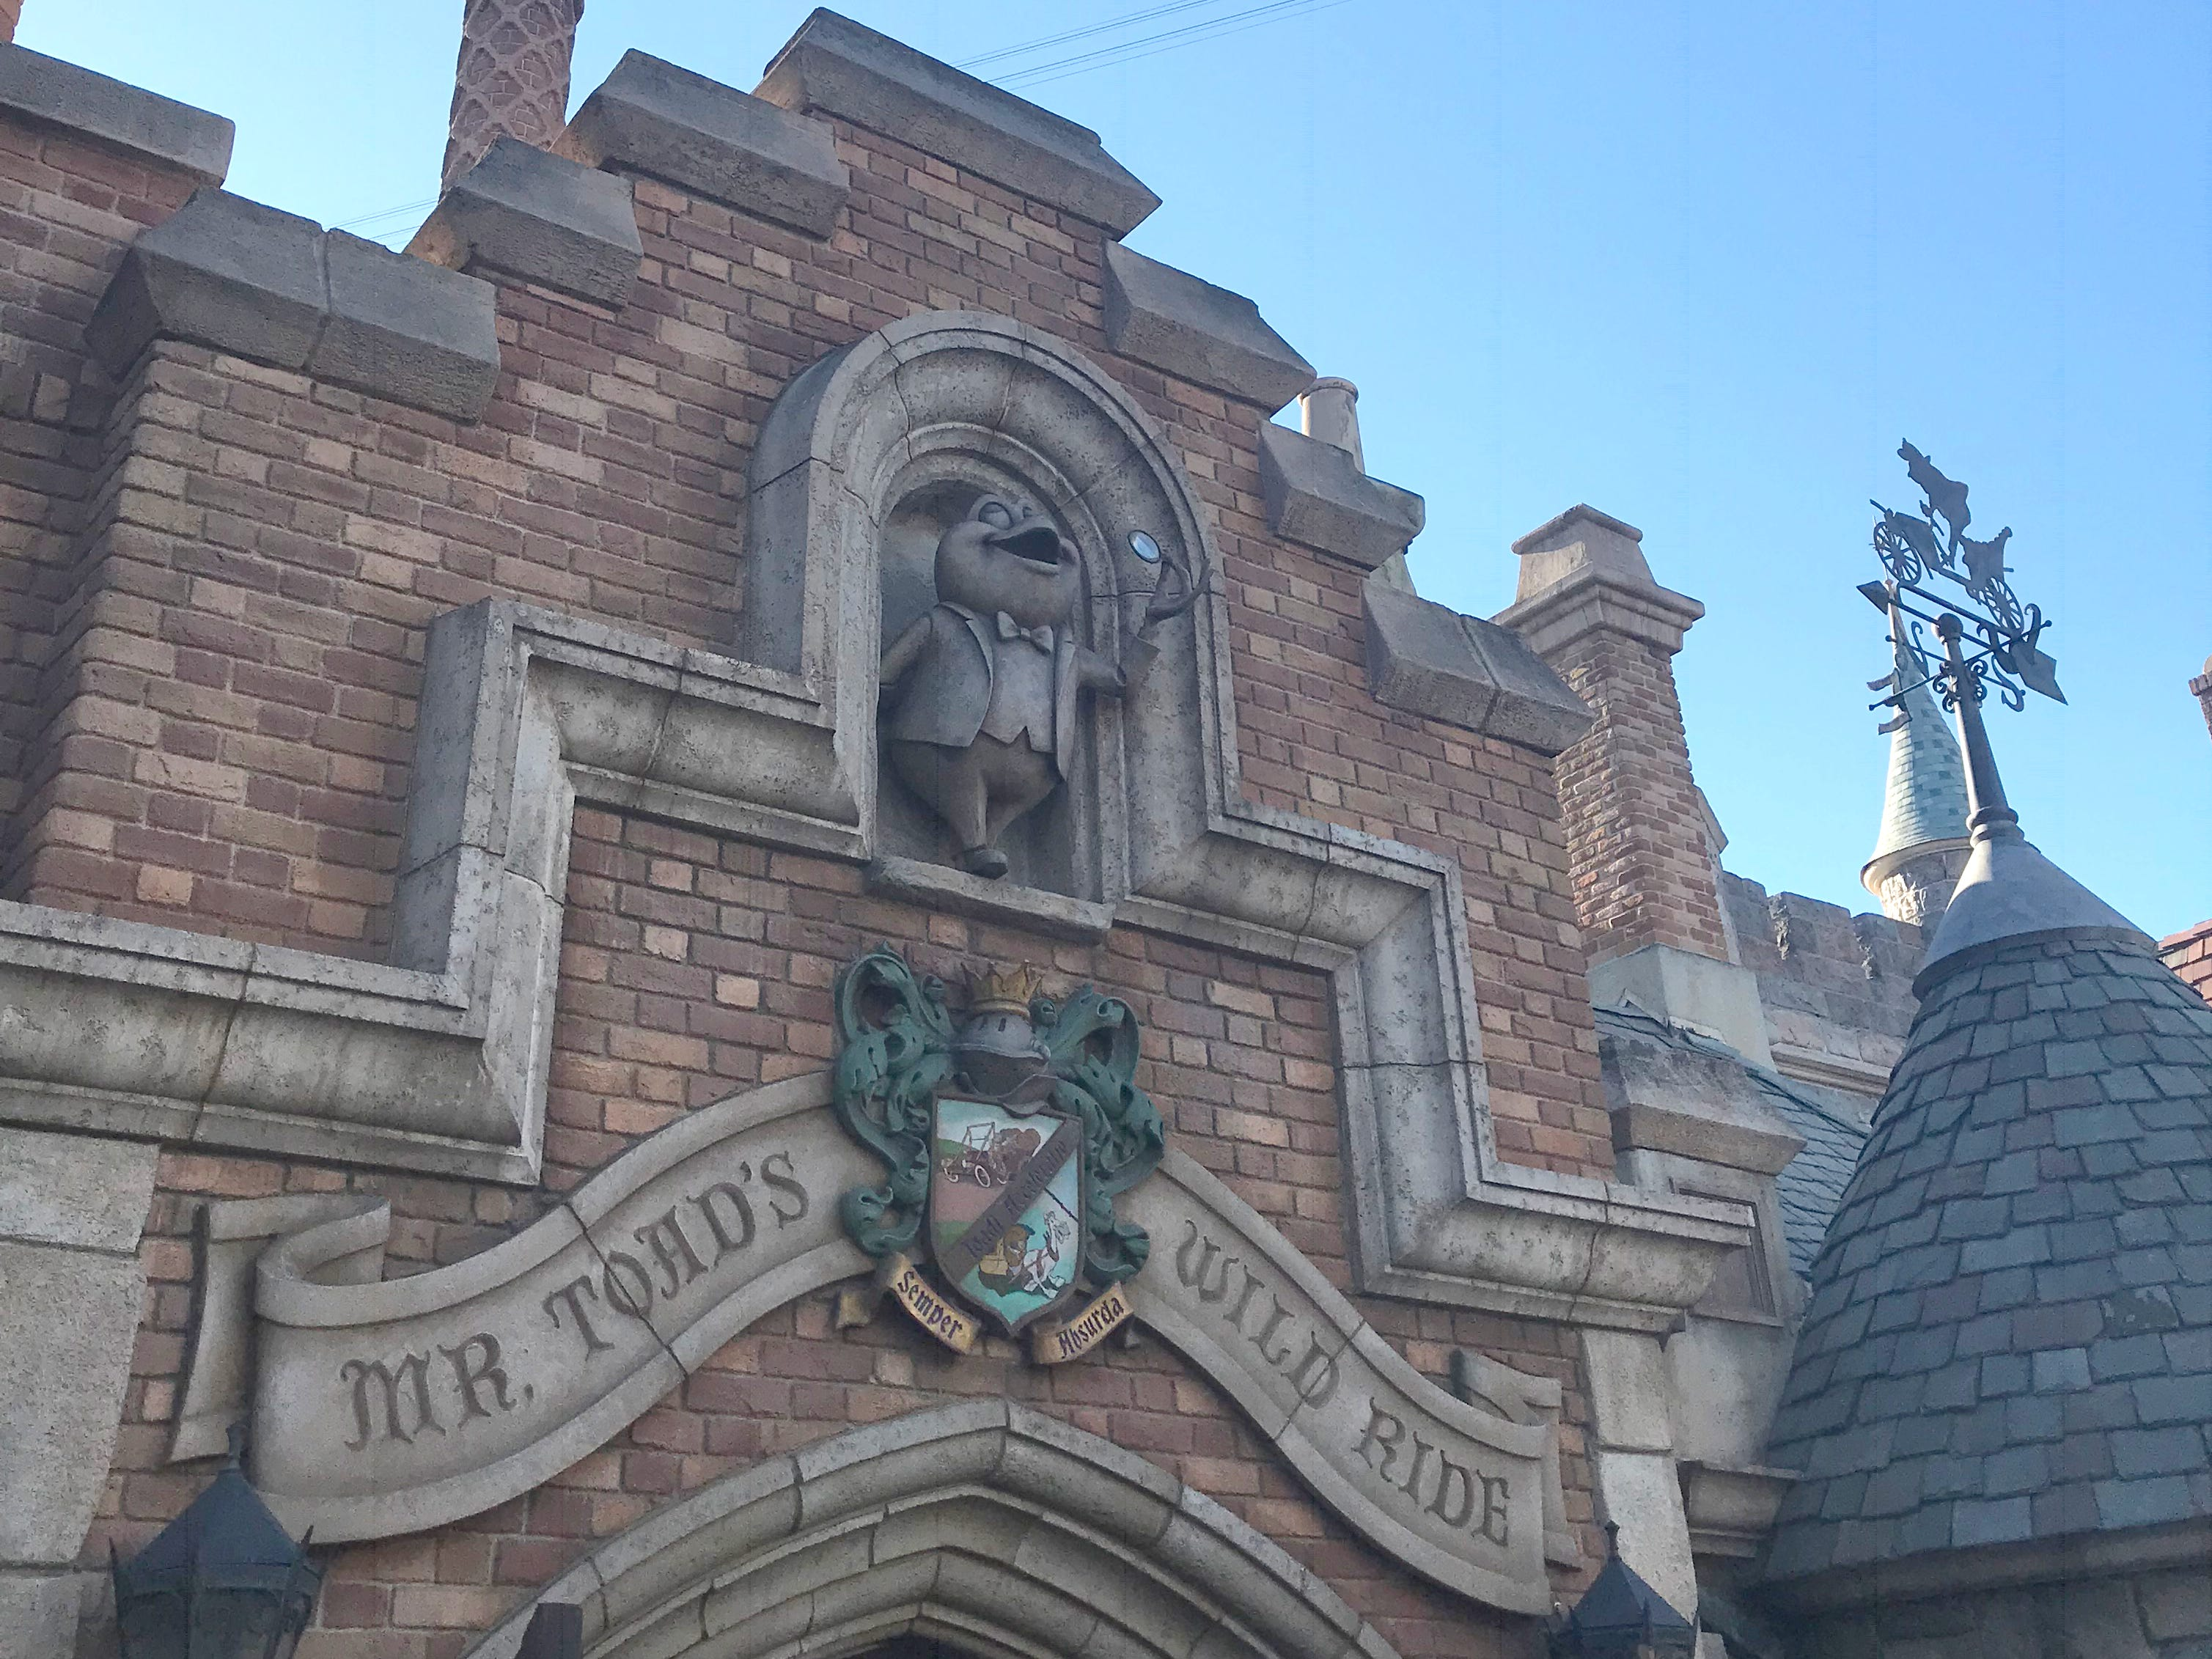 """Slide 17 of 23: You'll see Mr. Toad's family crest on the outside of the building that houses Mr. Toad's Wild Ride. It reads """"Toadi Acceleratio Semper Absurda"""" in Latin, which roughly translates to """"The acceleration of Toad is always absurd."""""""